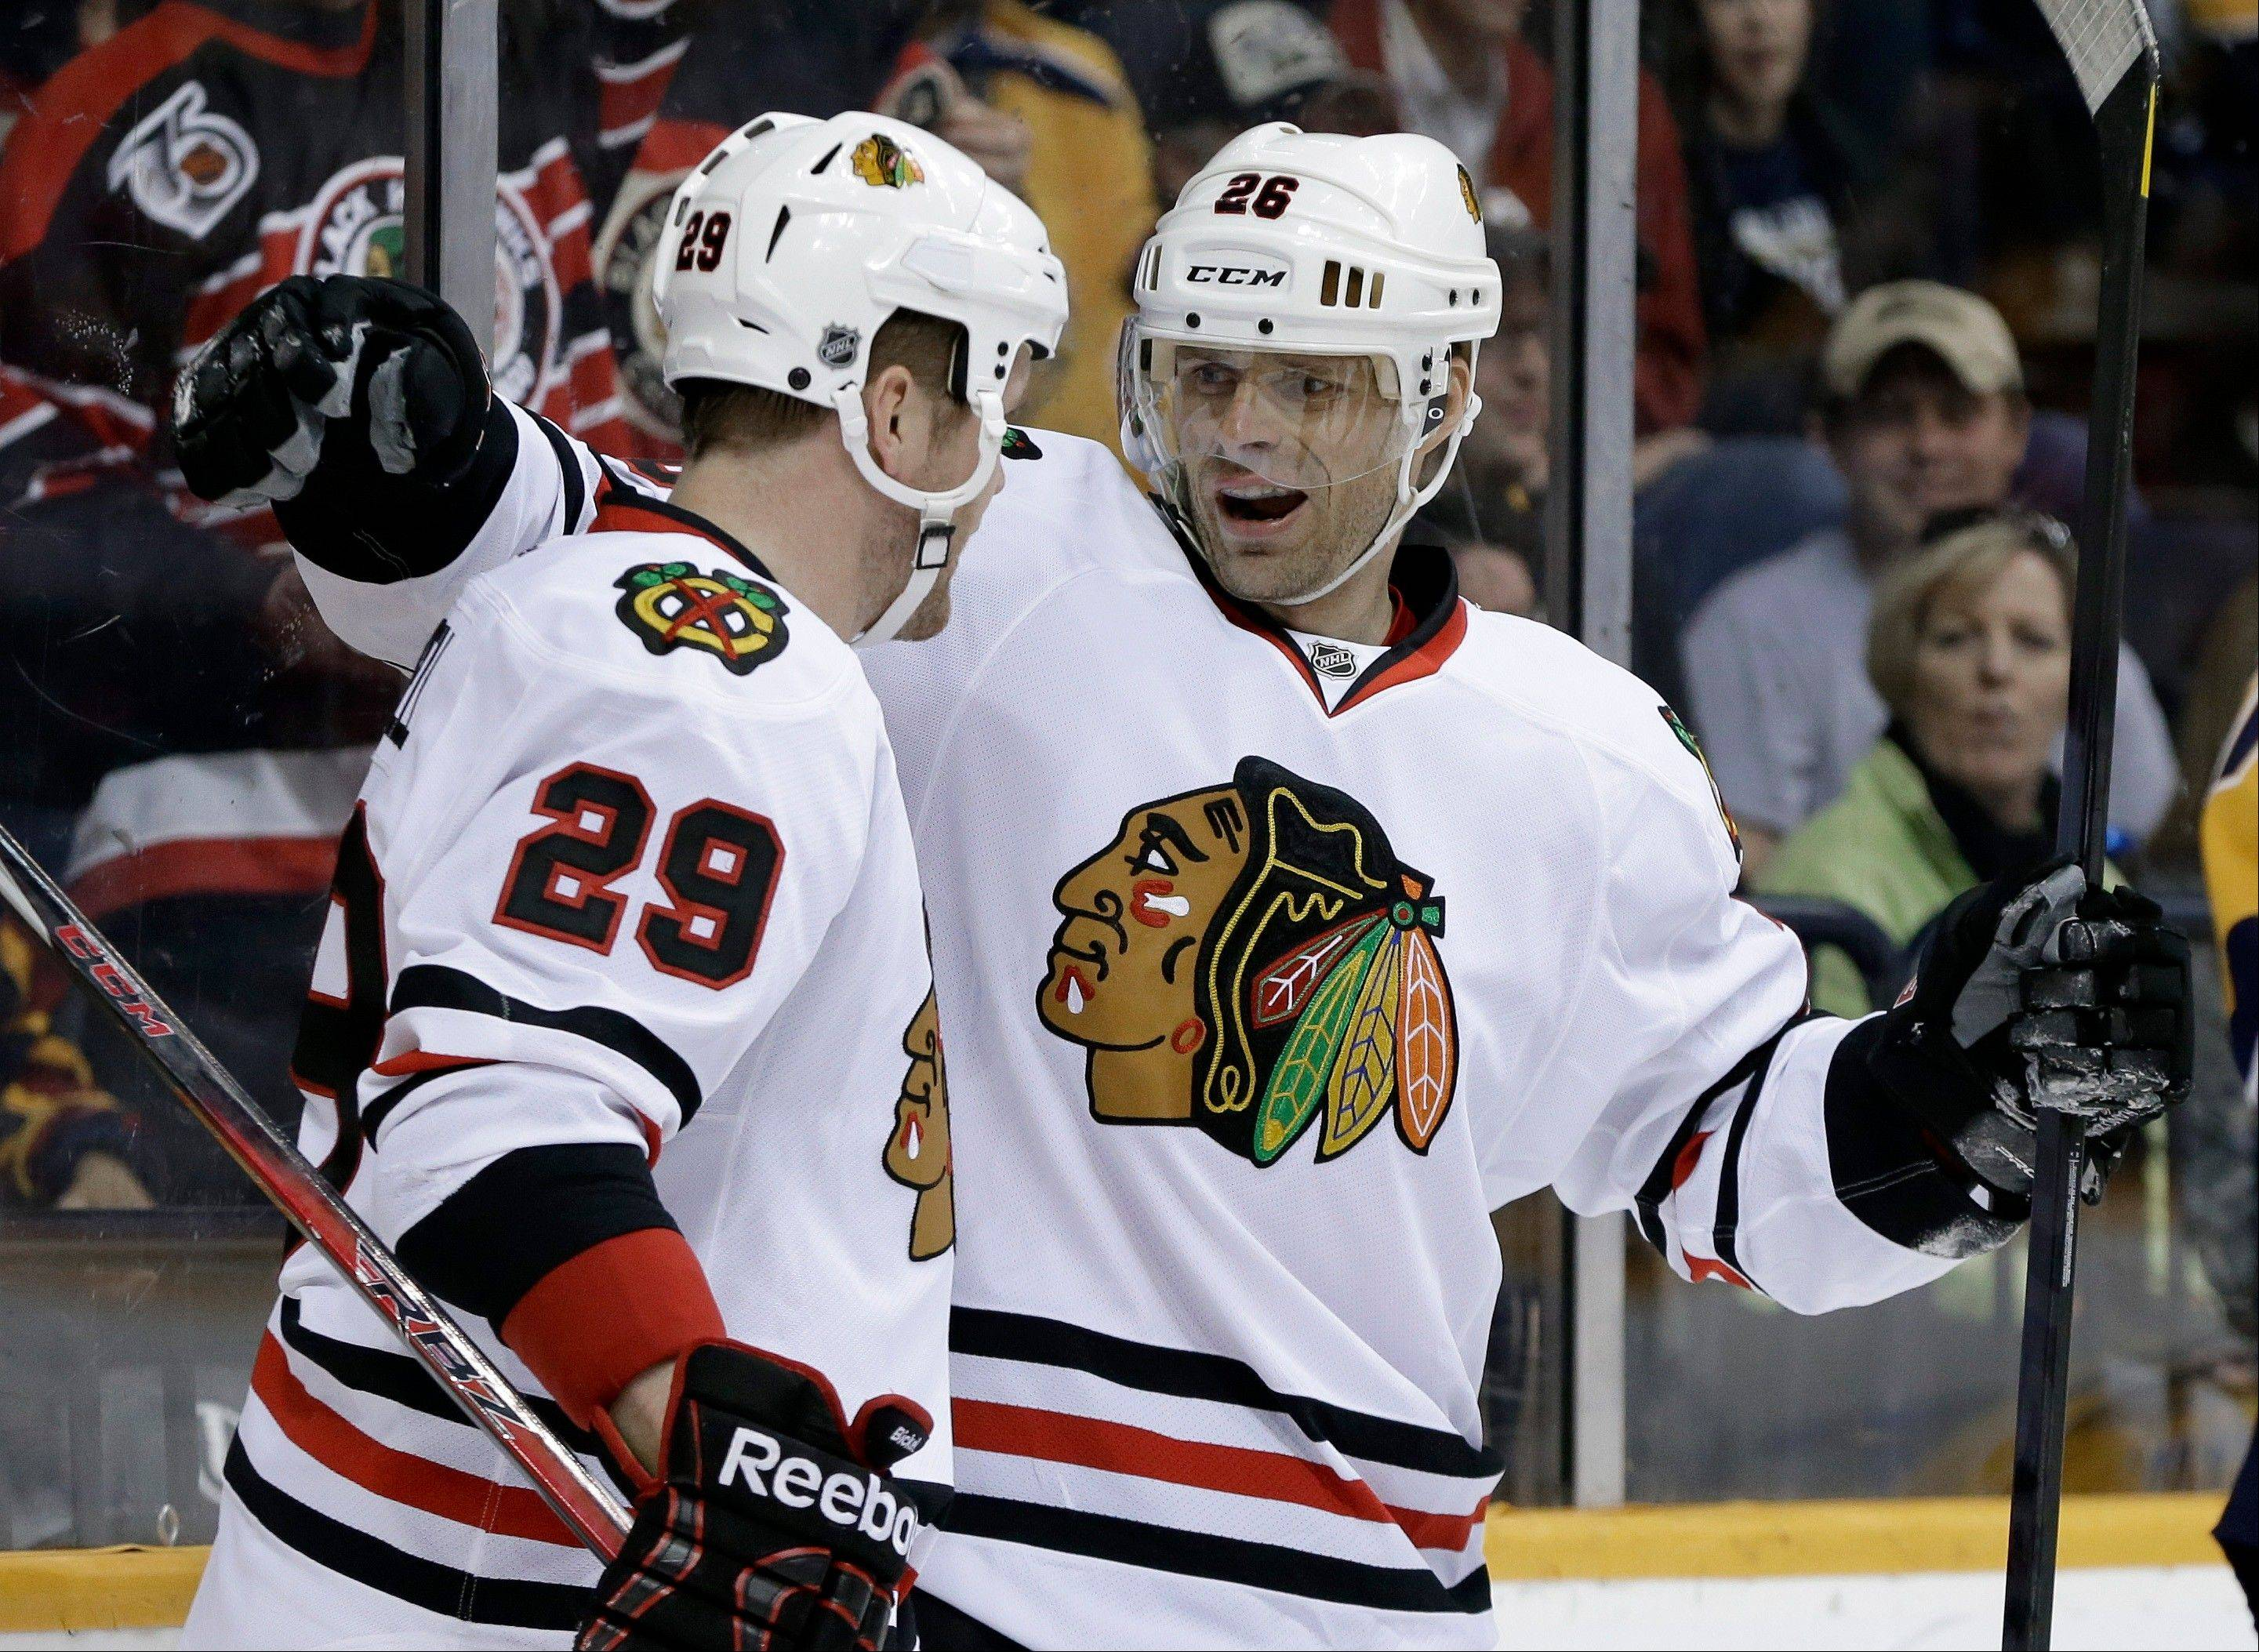 Blackhawks left wing Bryan Bickell (29) is congratulated by Michal Handzus (26) after scoring against the Nashville Predators in Saturday's first period.